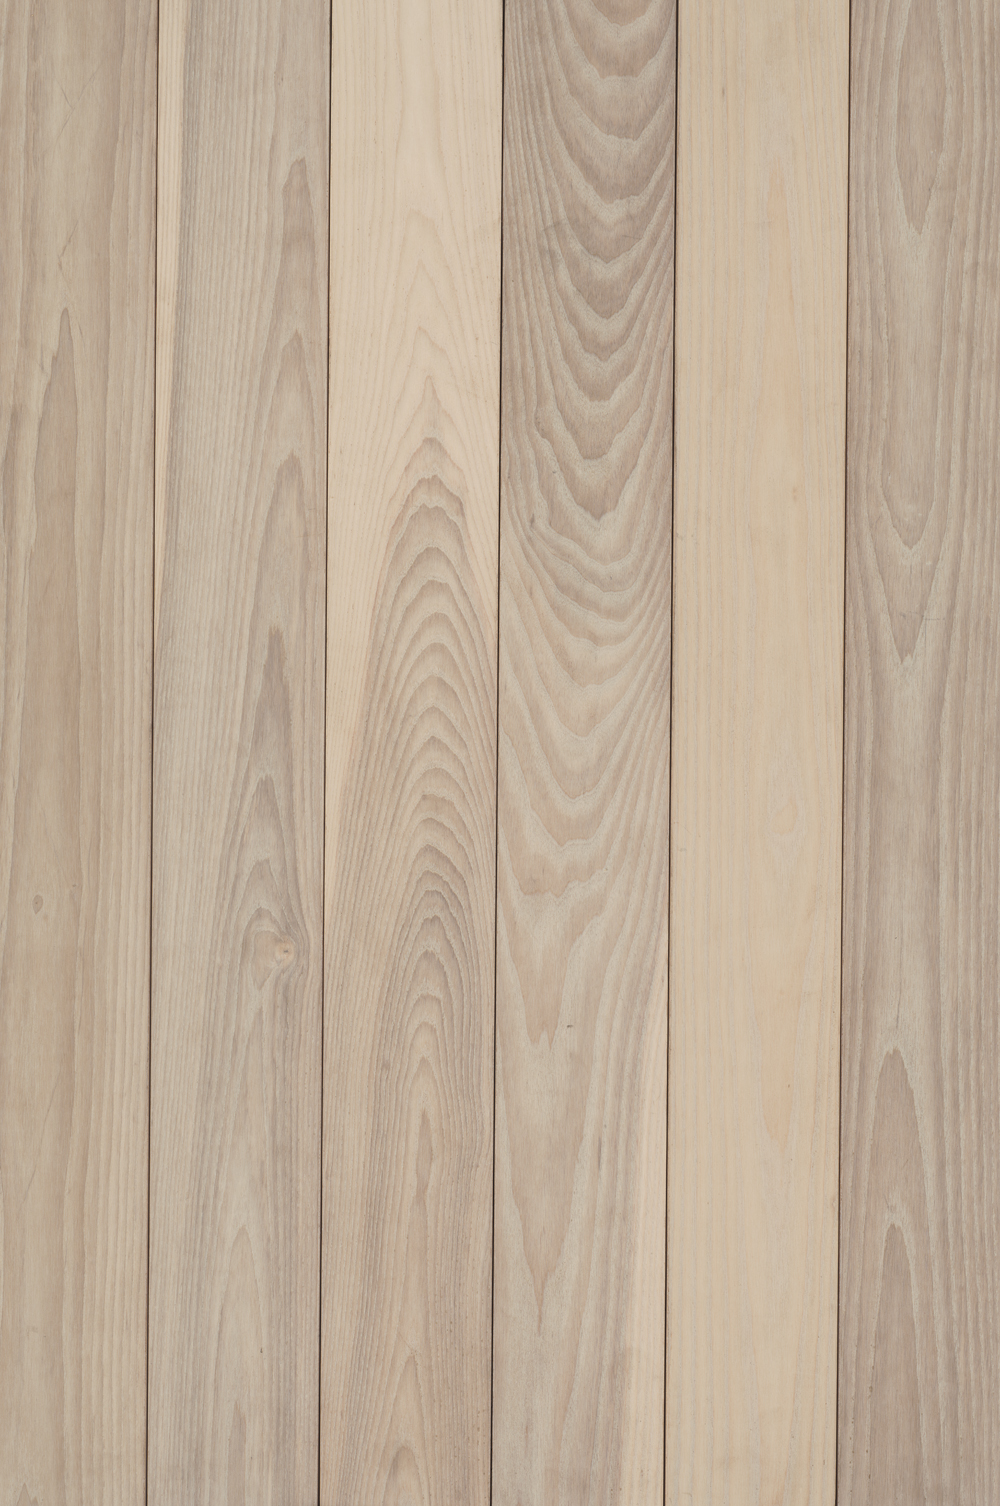 Select Harvest Ash Softwood Flooring [Neva Finish]